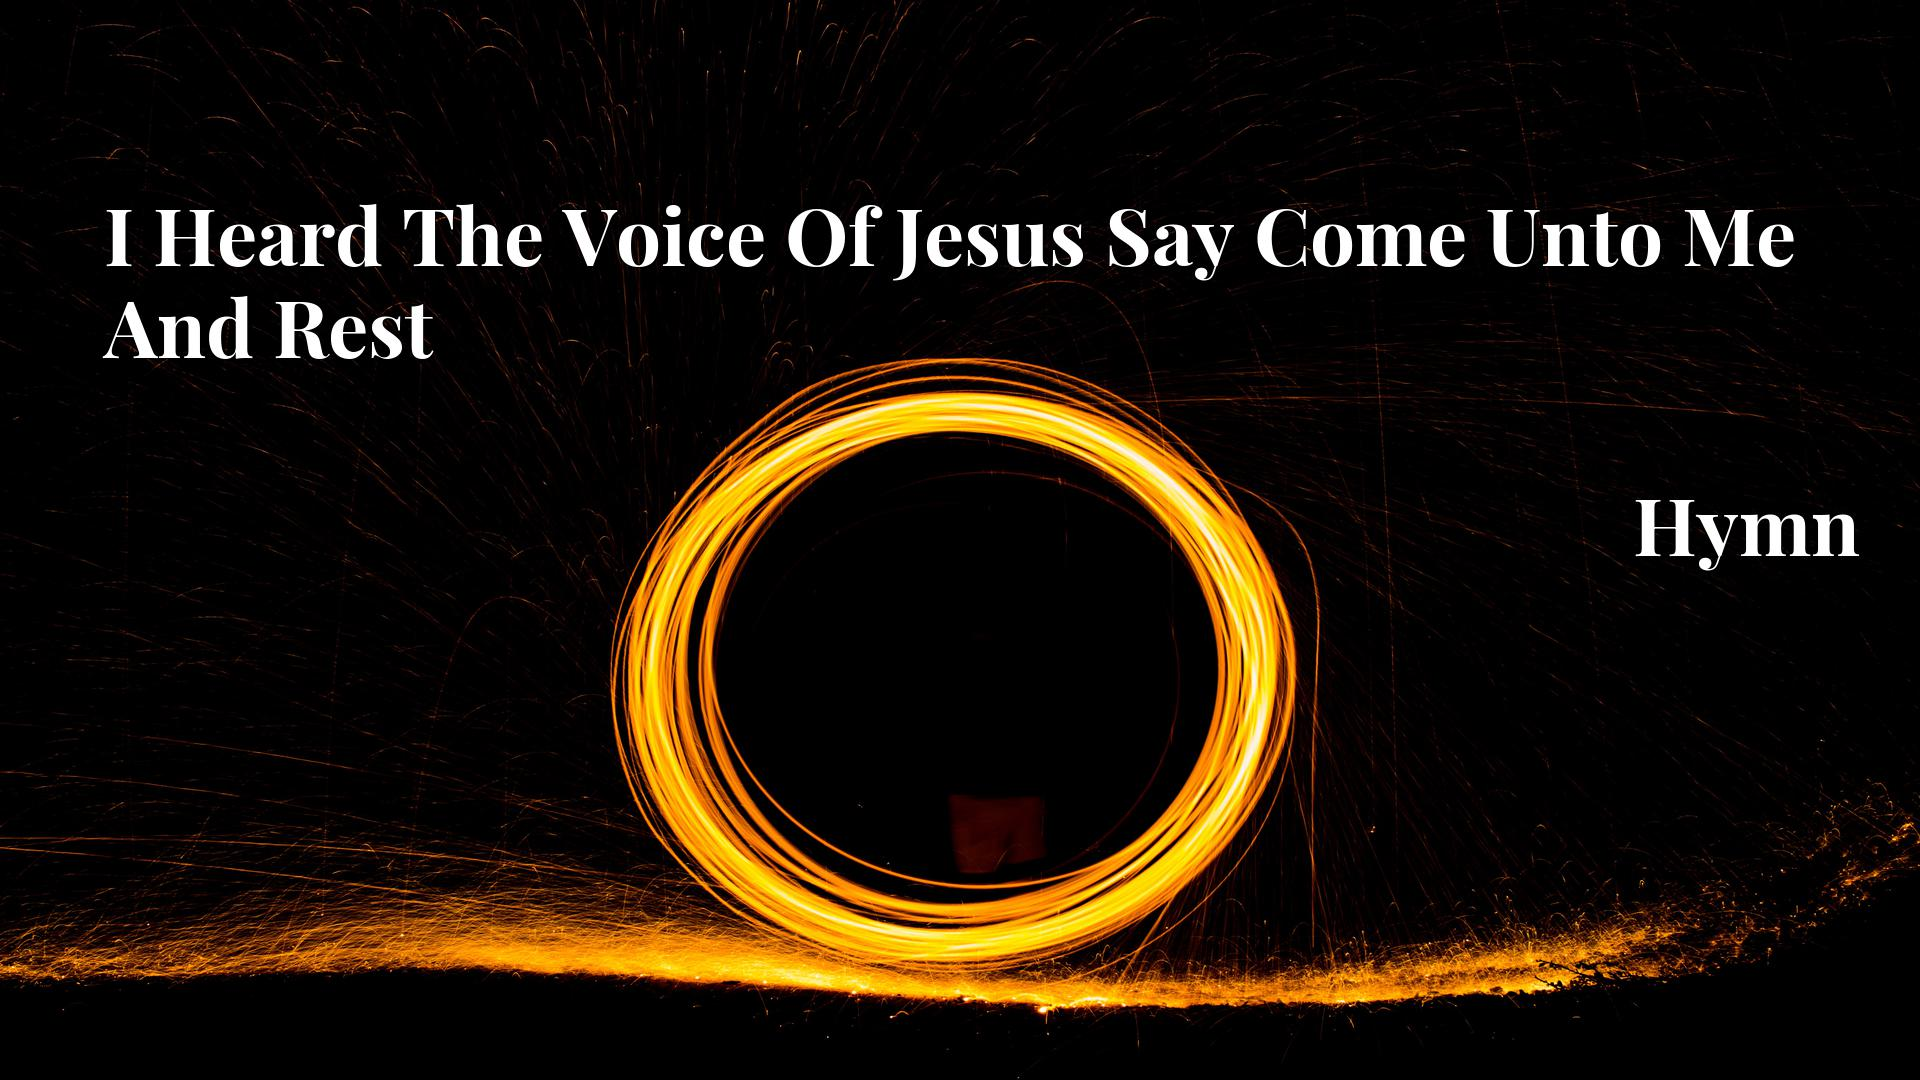 I Heard The Voice Of Jesus Say Come Unto Me And Rest - Hymn